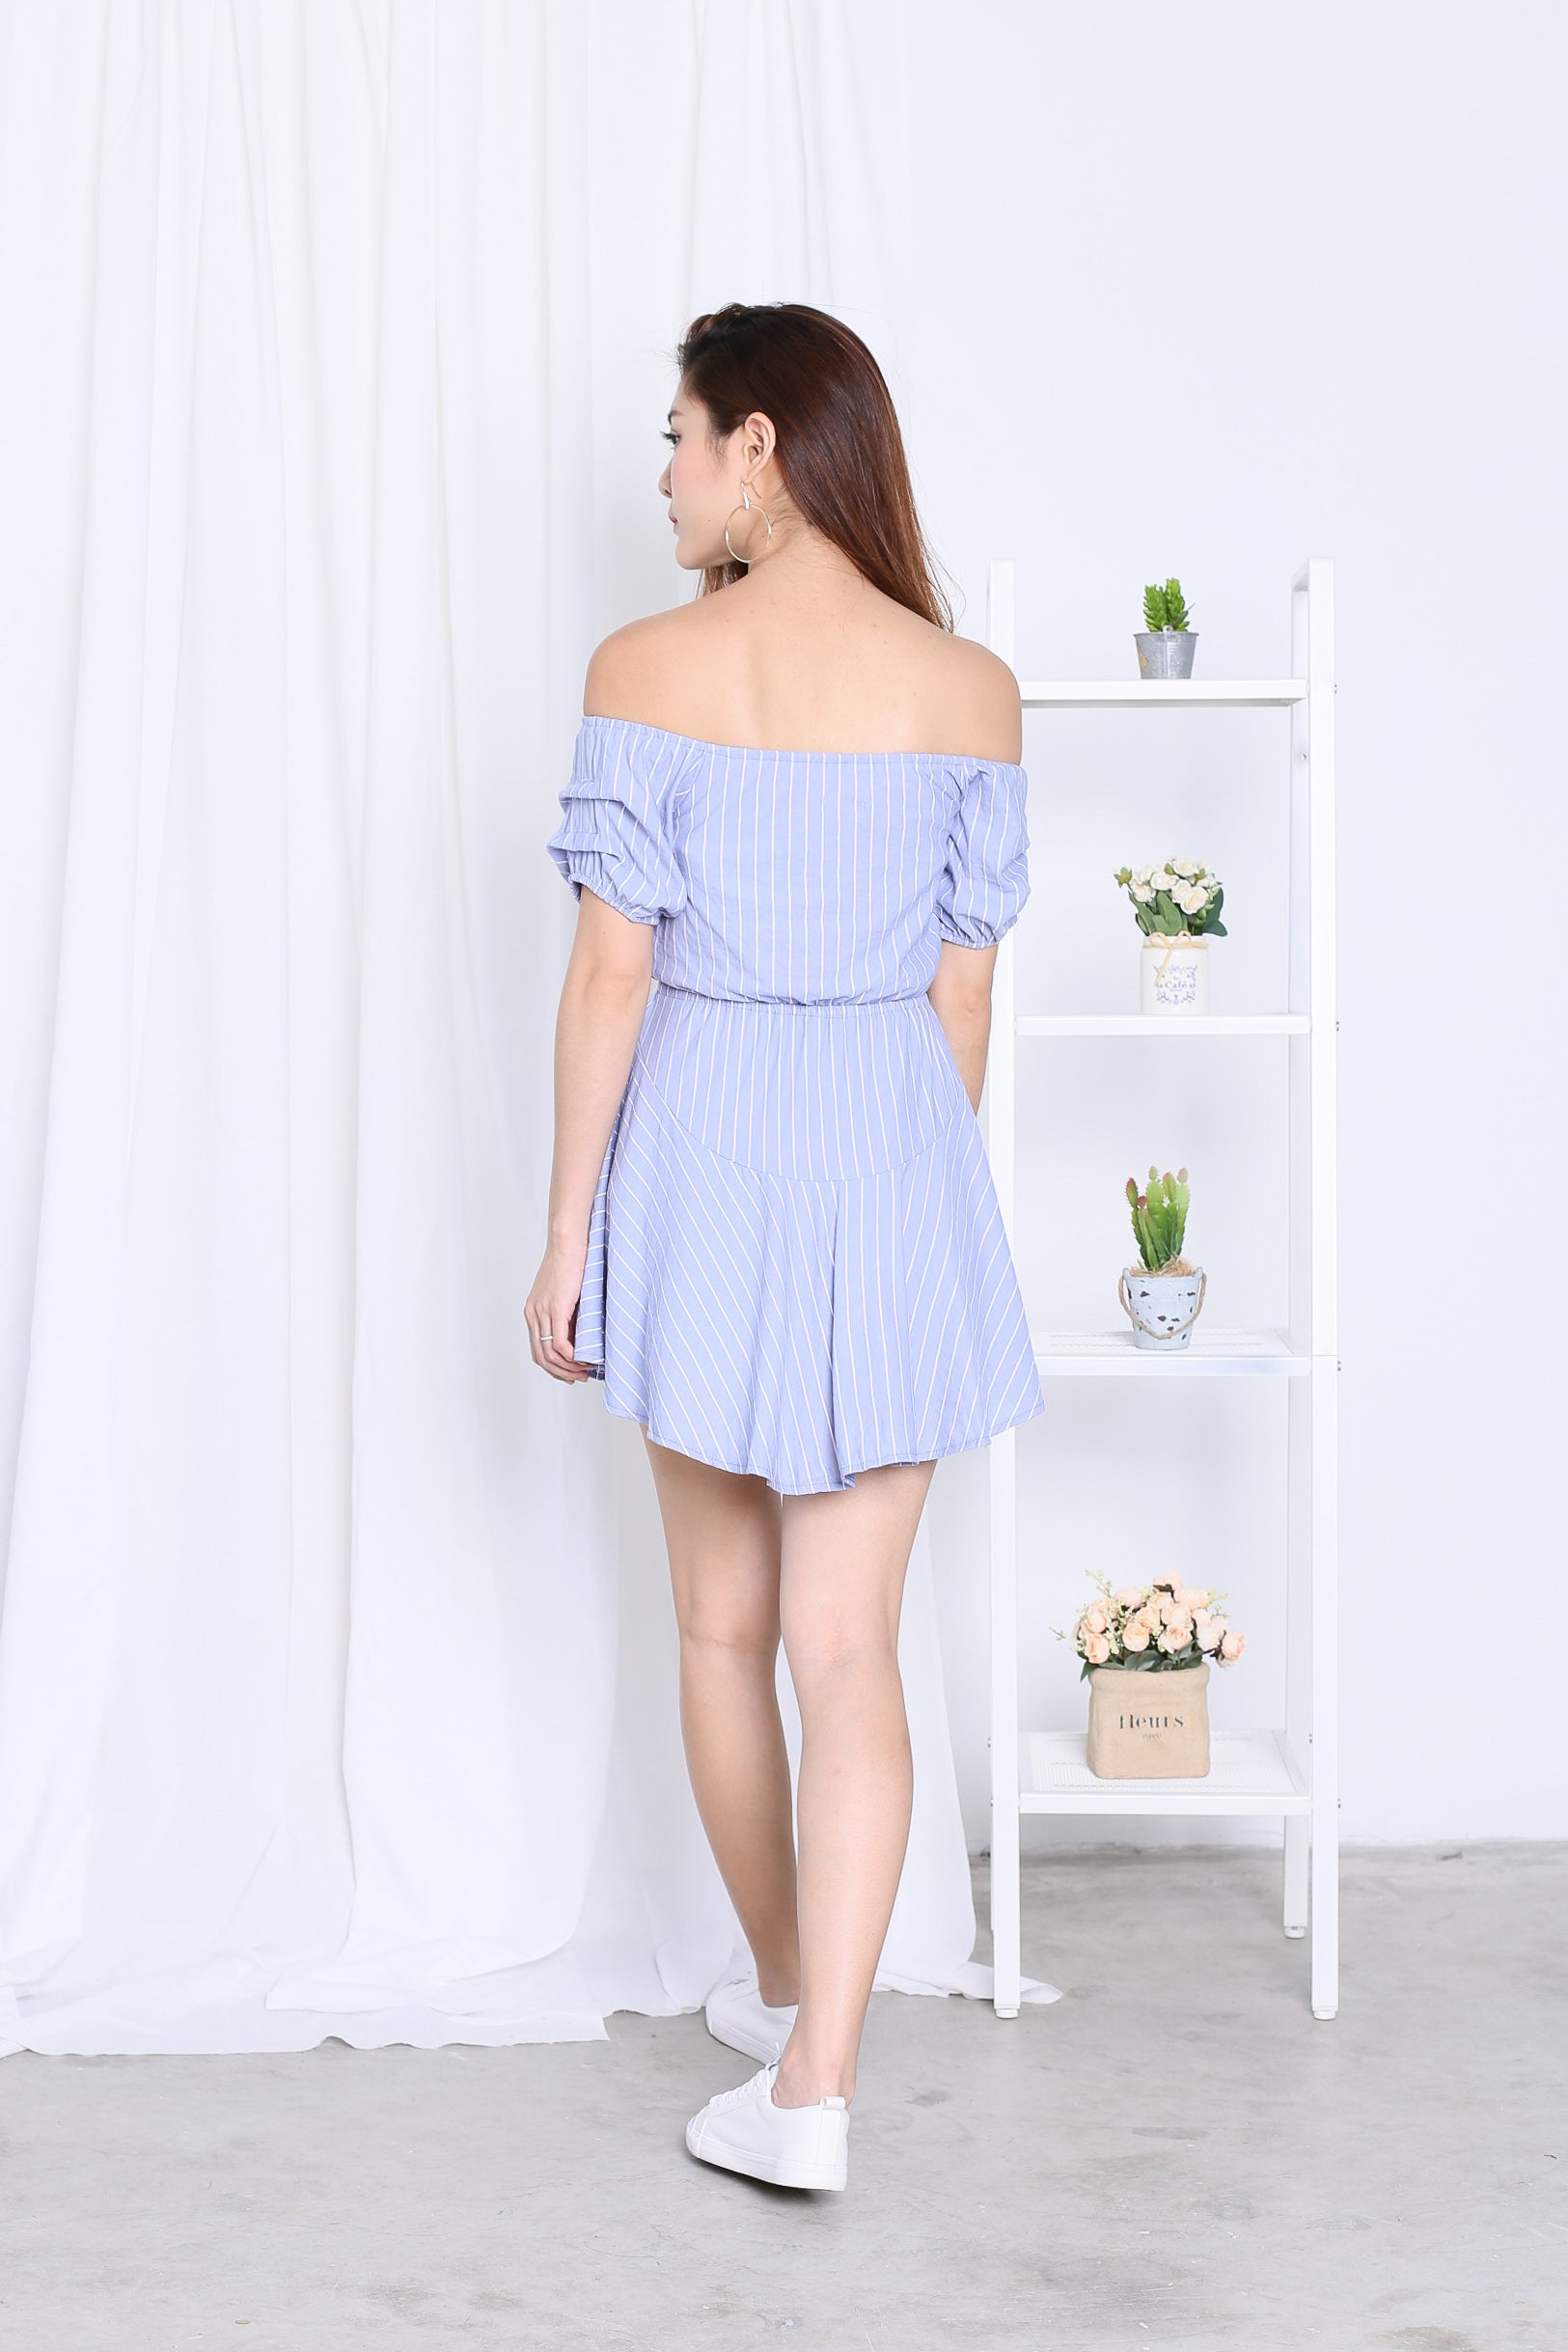 *TOPAZ* (PREMIUM) OFF DUTY STRIPES DRESS ROMPER IN PERIWINKLE BLUE